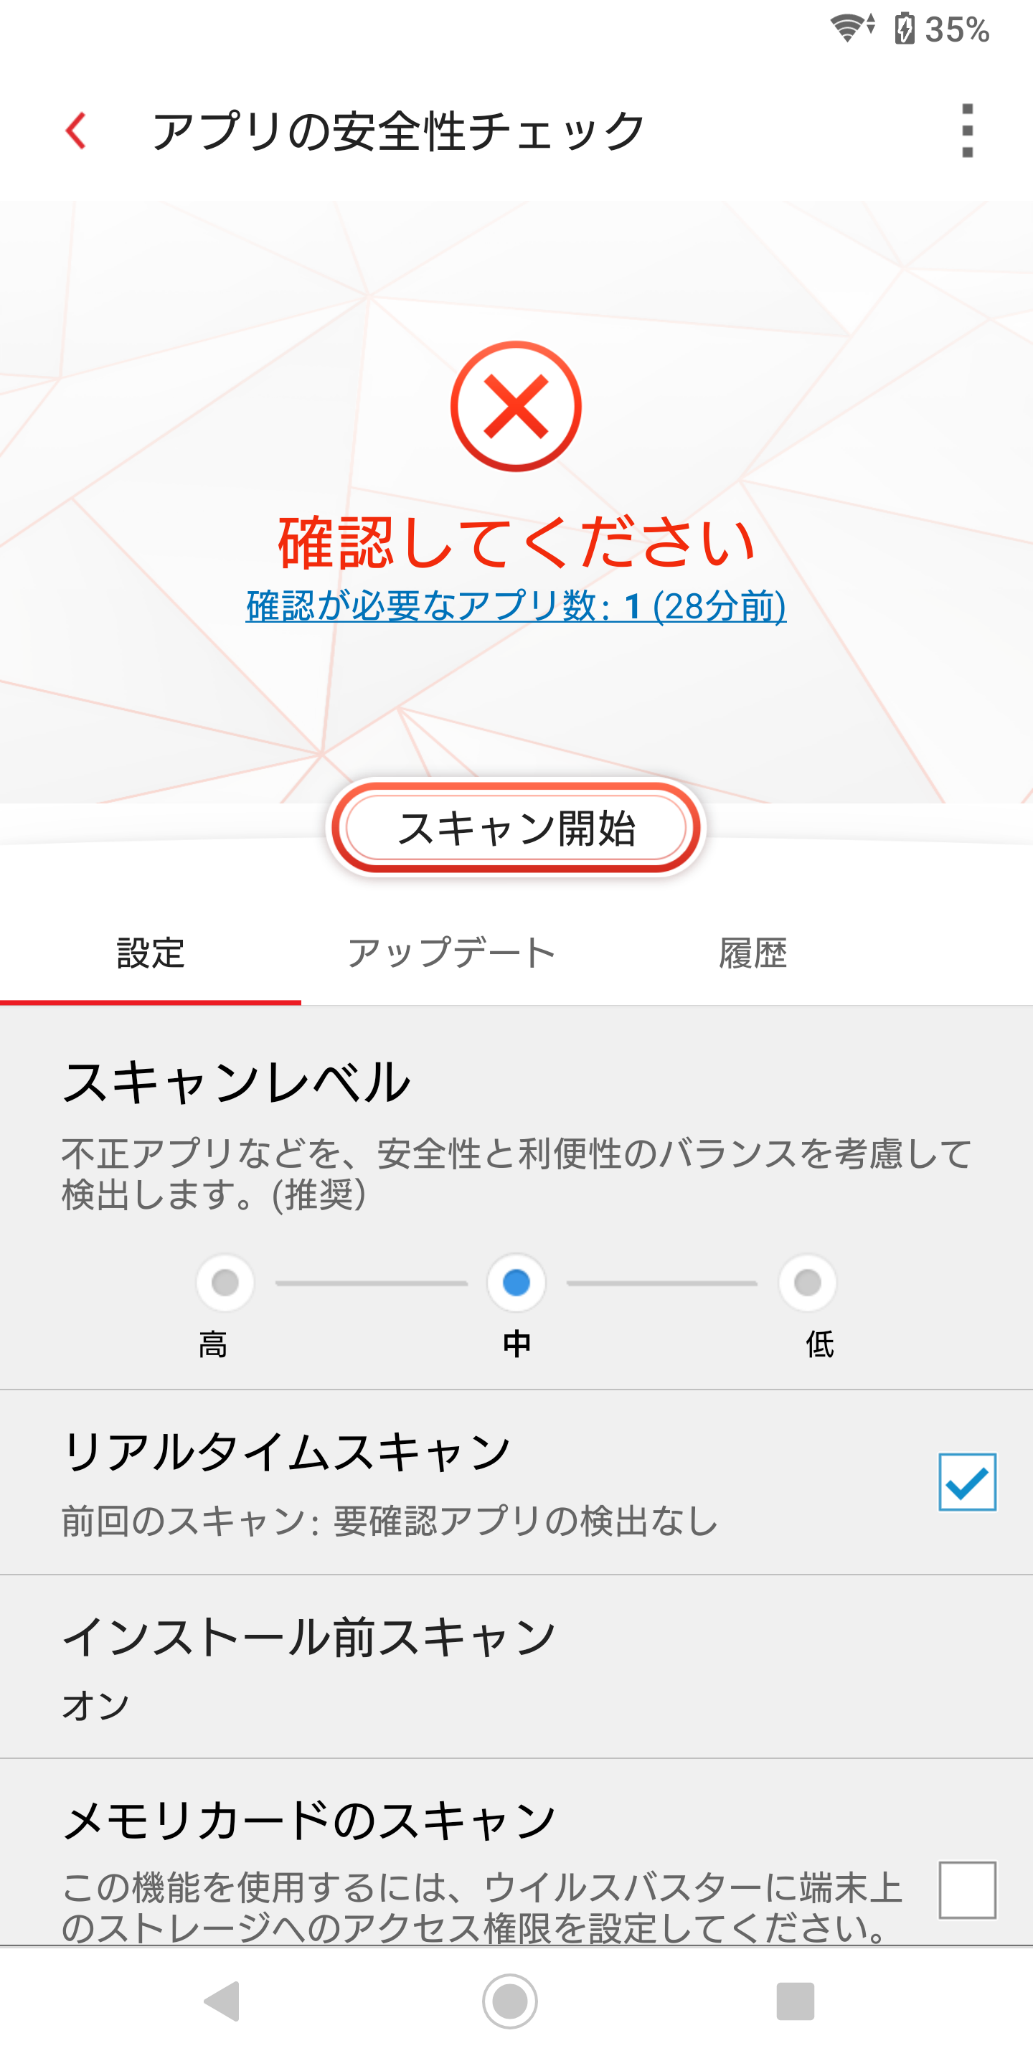 Enable Realtime Scan